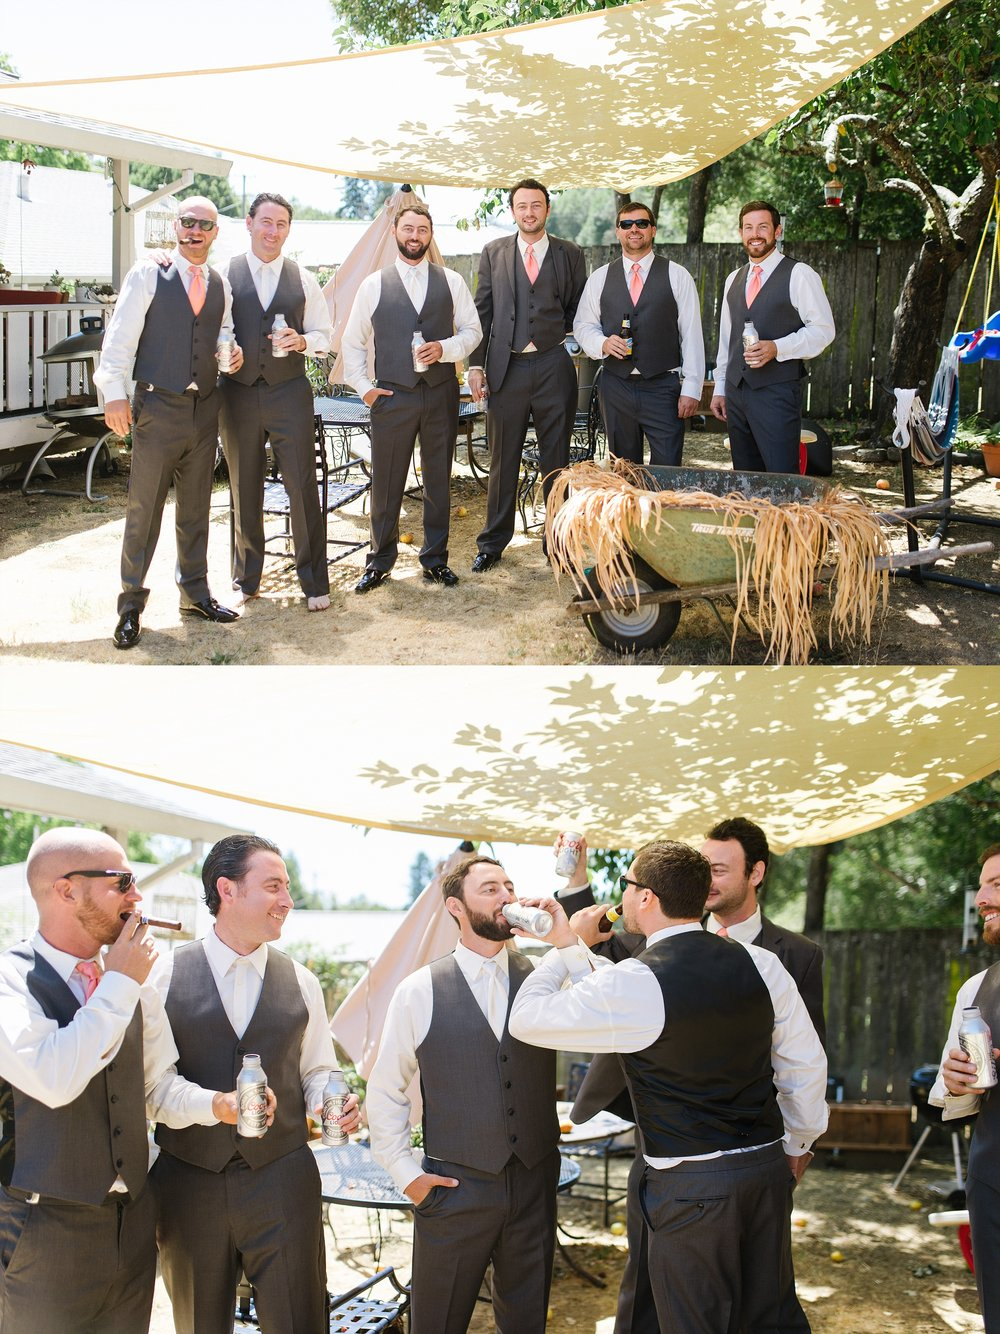 fairfax_ranch_wedding_chelsea_dier_photography_0005.jpg